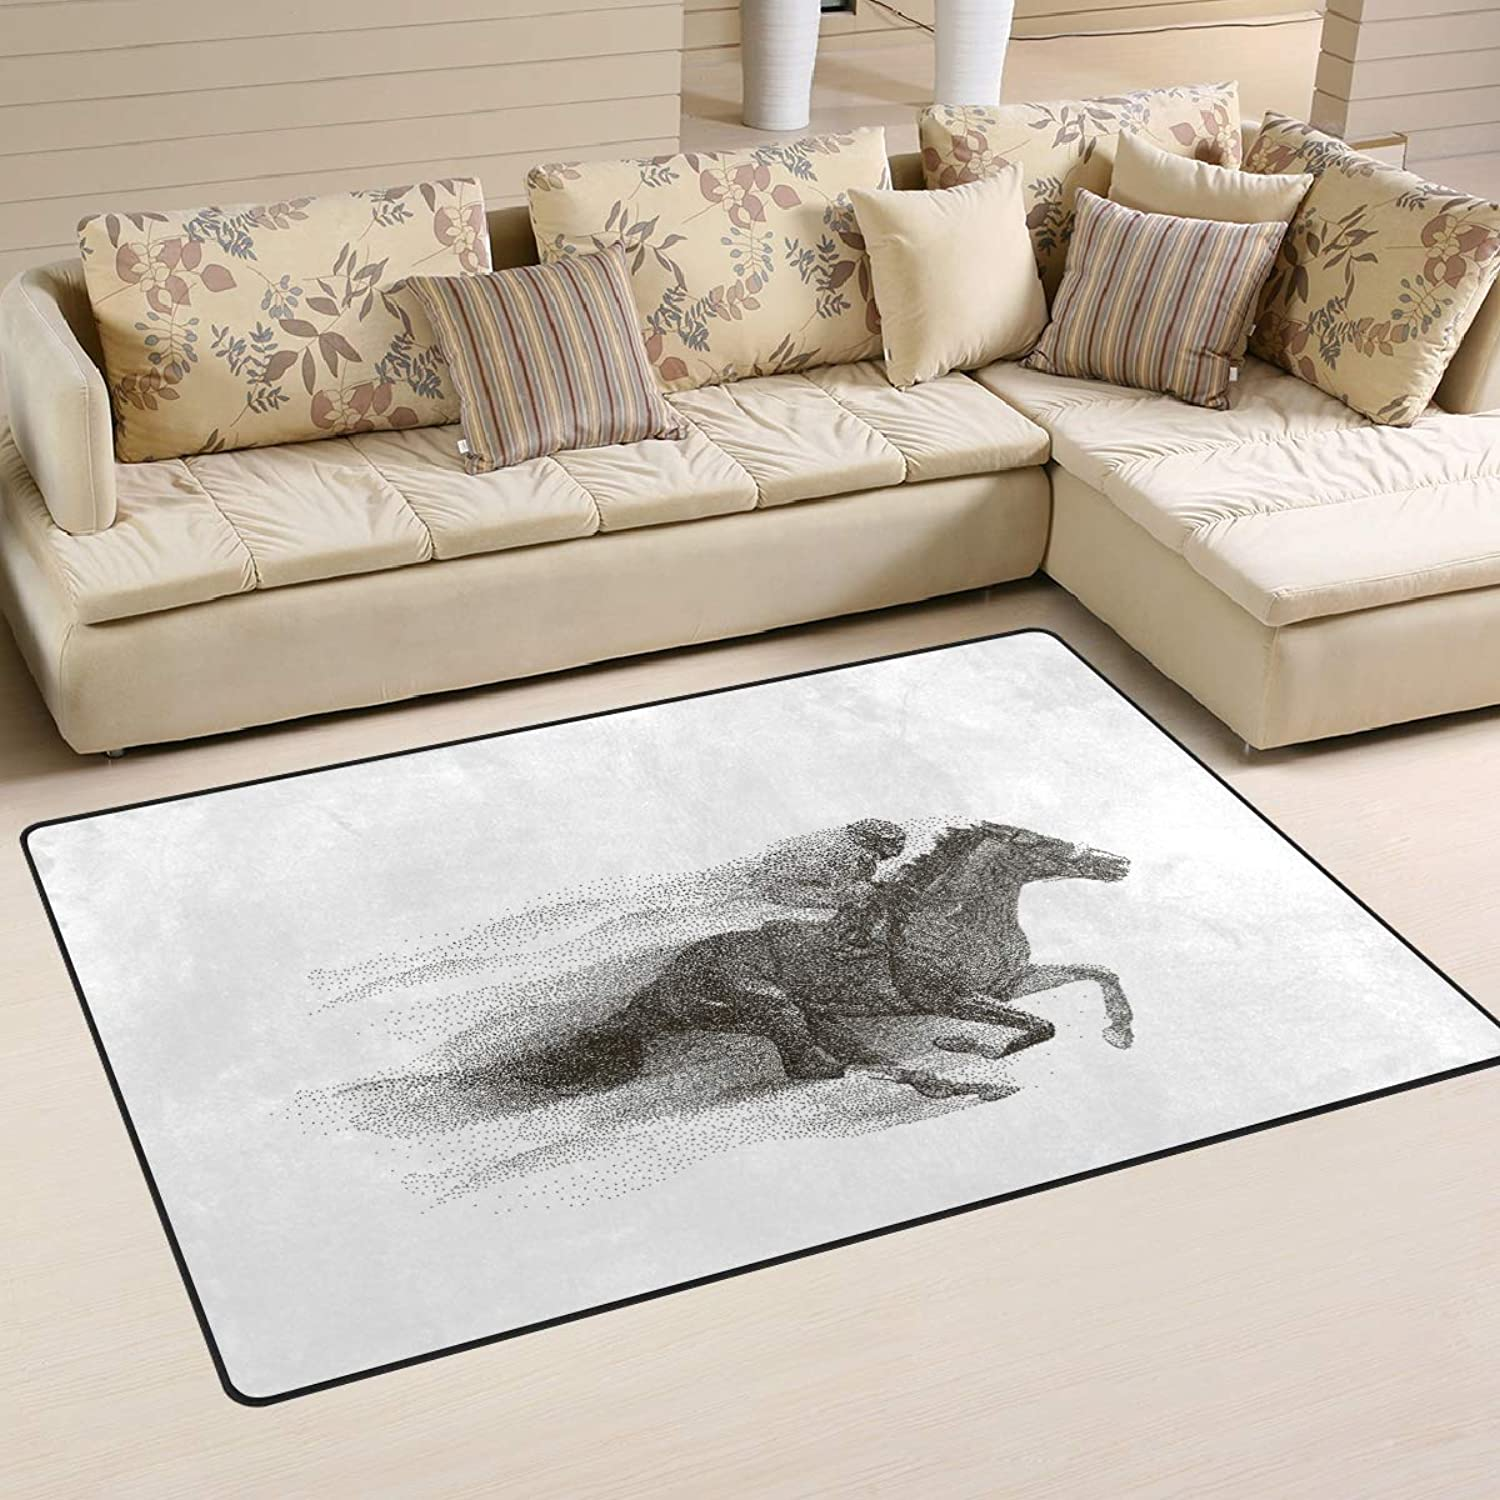 Area Rugs Doormats Cool Jockey Riding Horse 5'x3'3 (60x39 Inches) Non-Slip Floor Mat Soft Carpet for Living Dining Bedroom Home